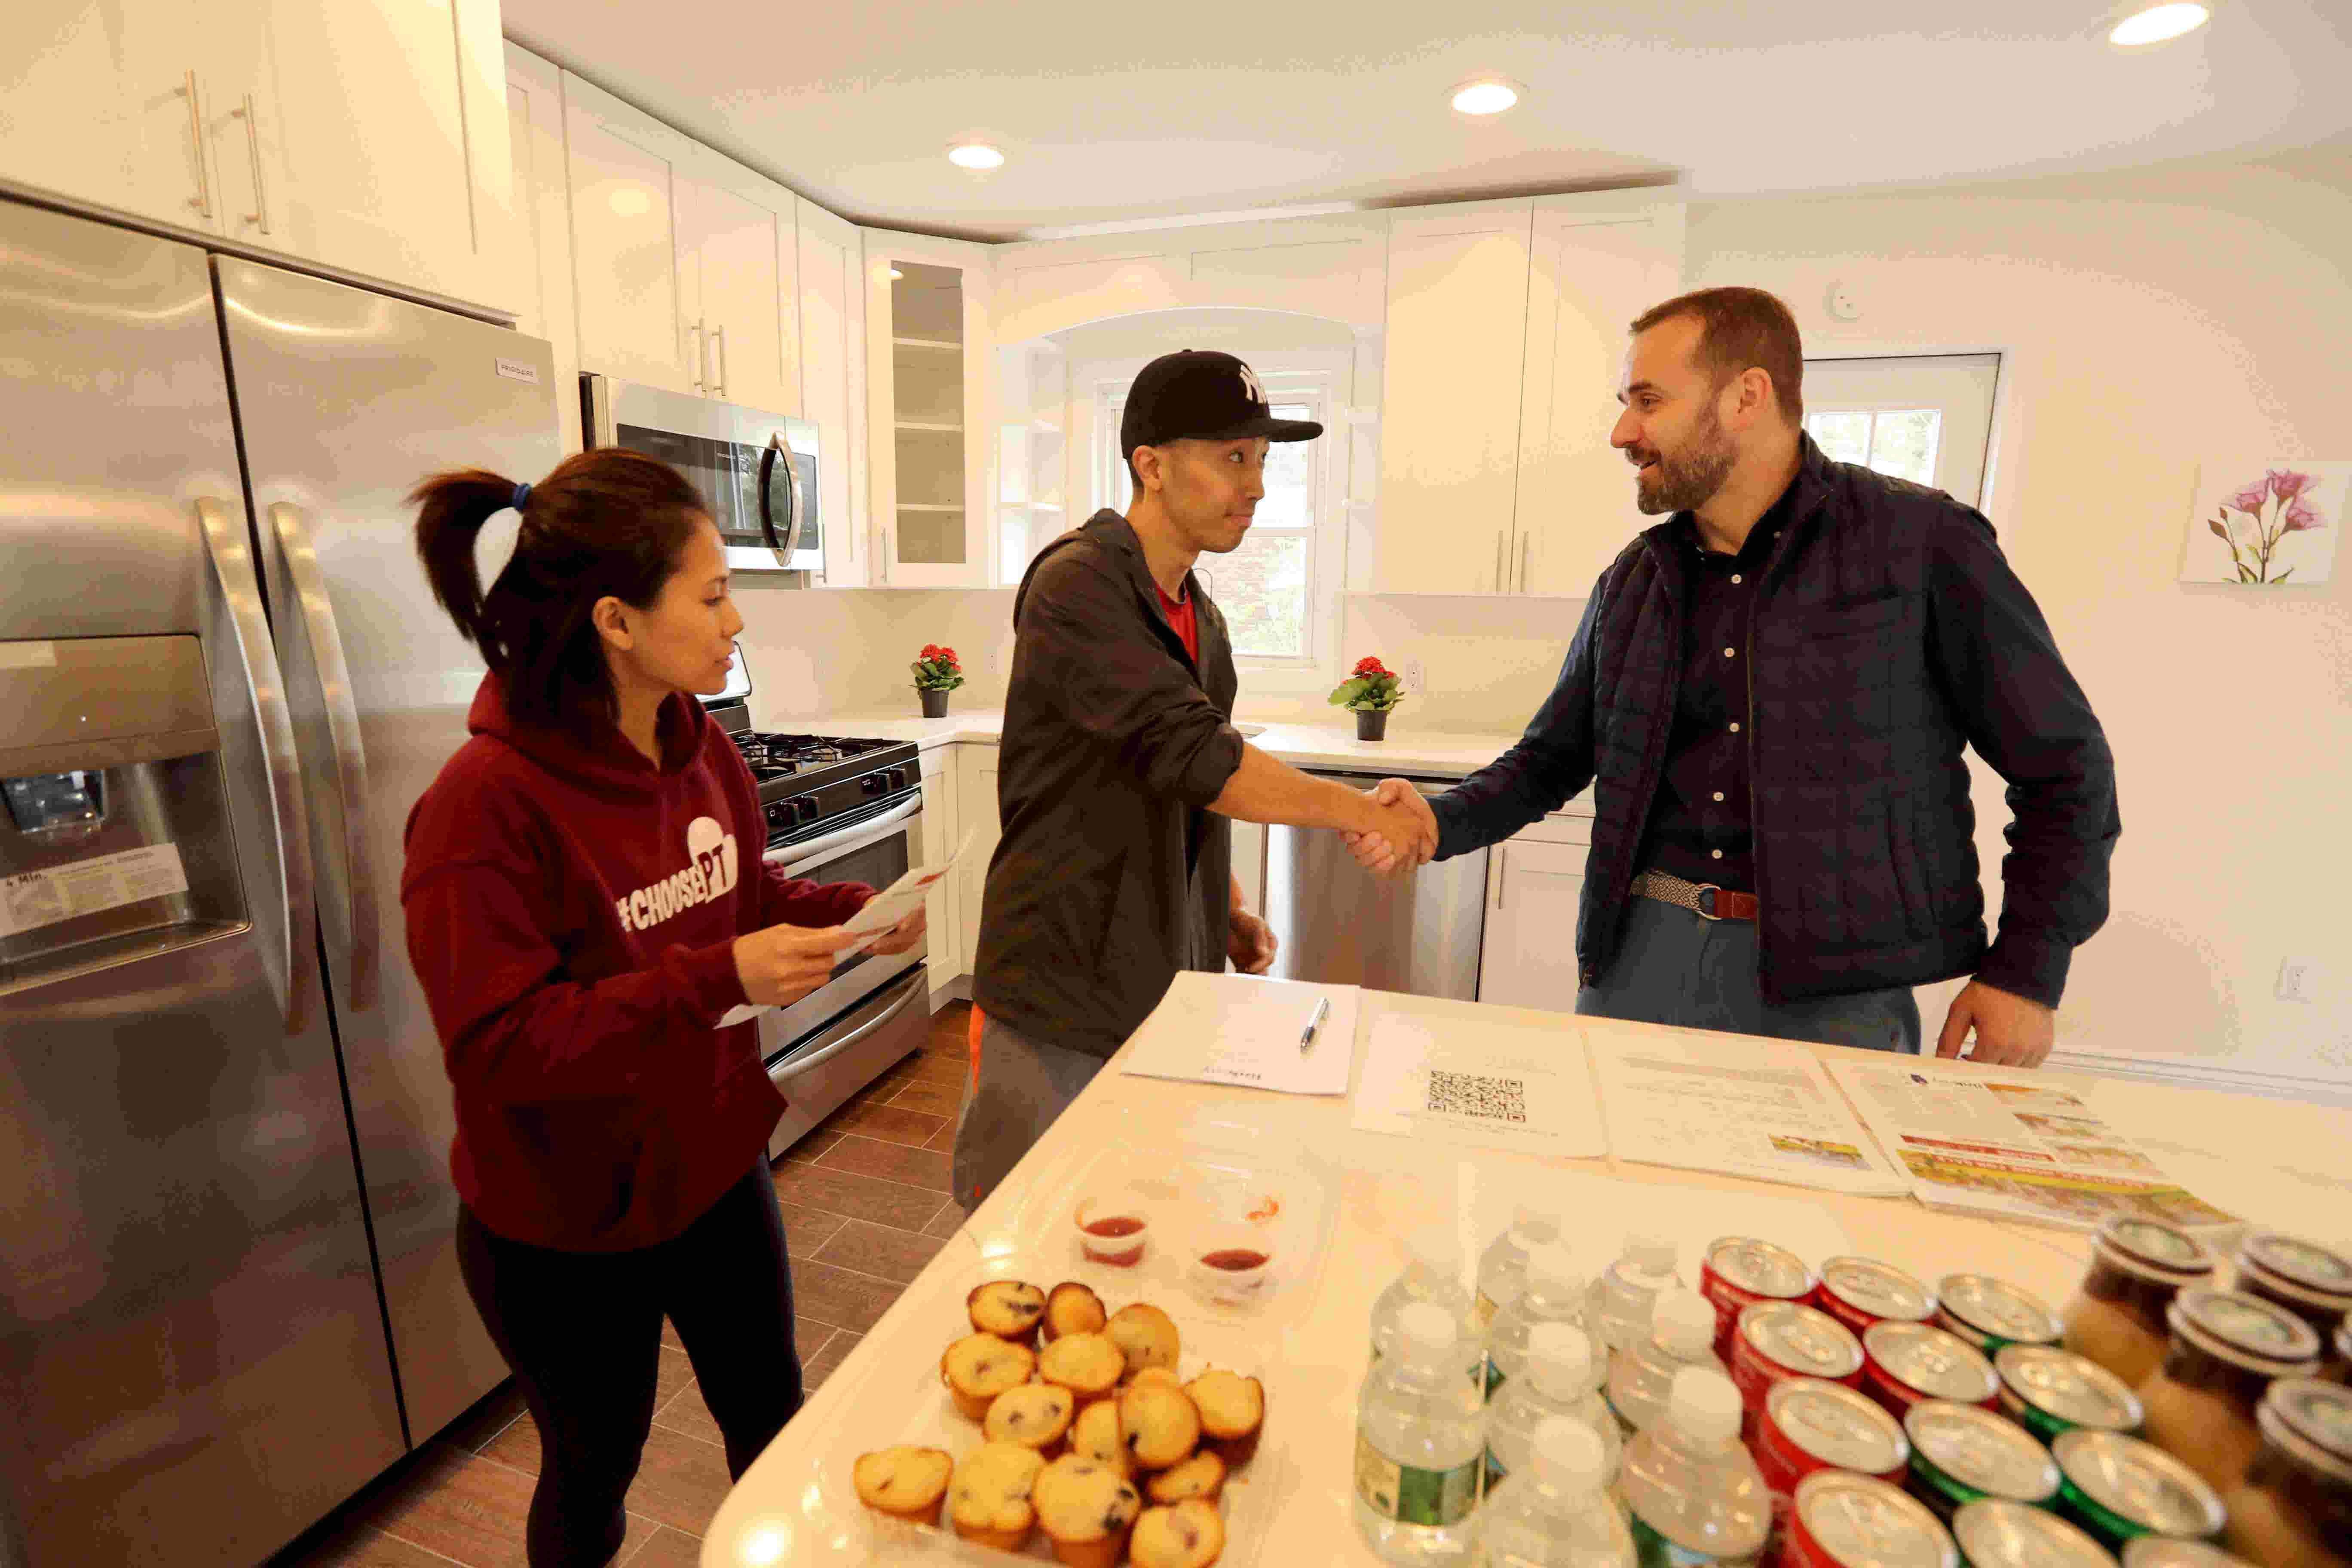 Realtors and home buyers look to Spring for busy season